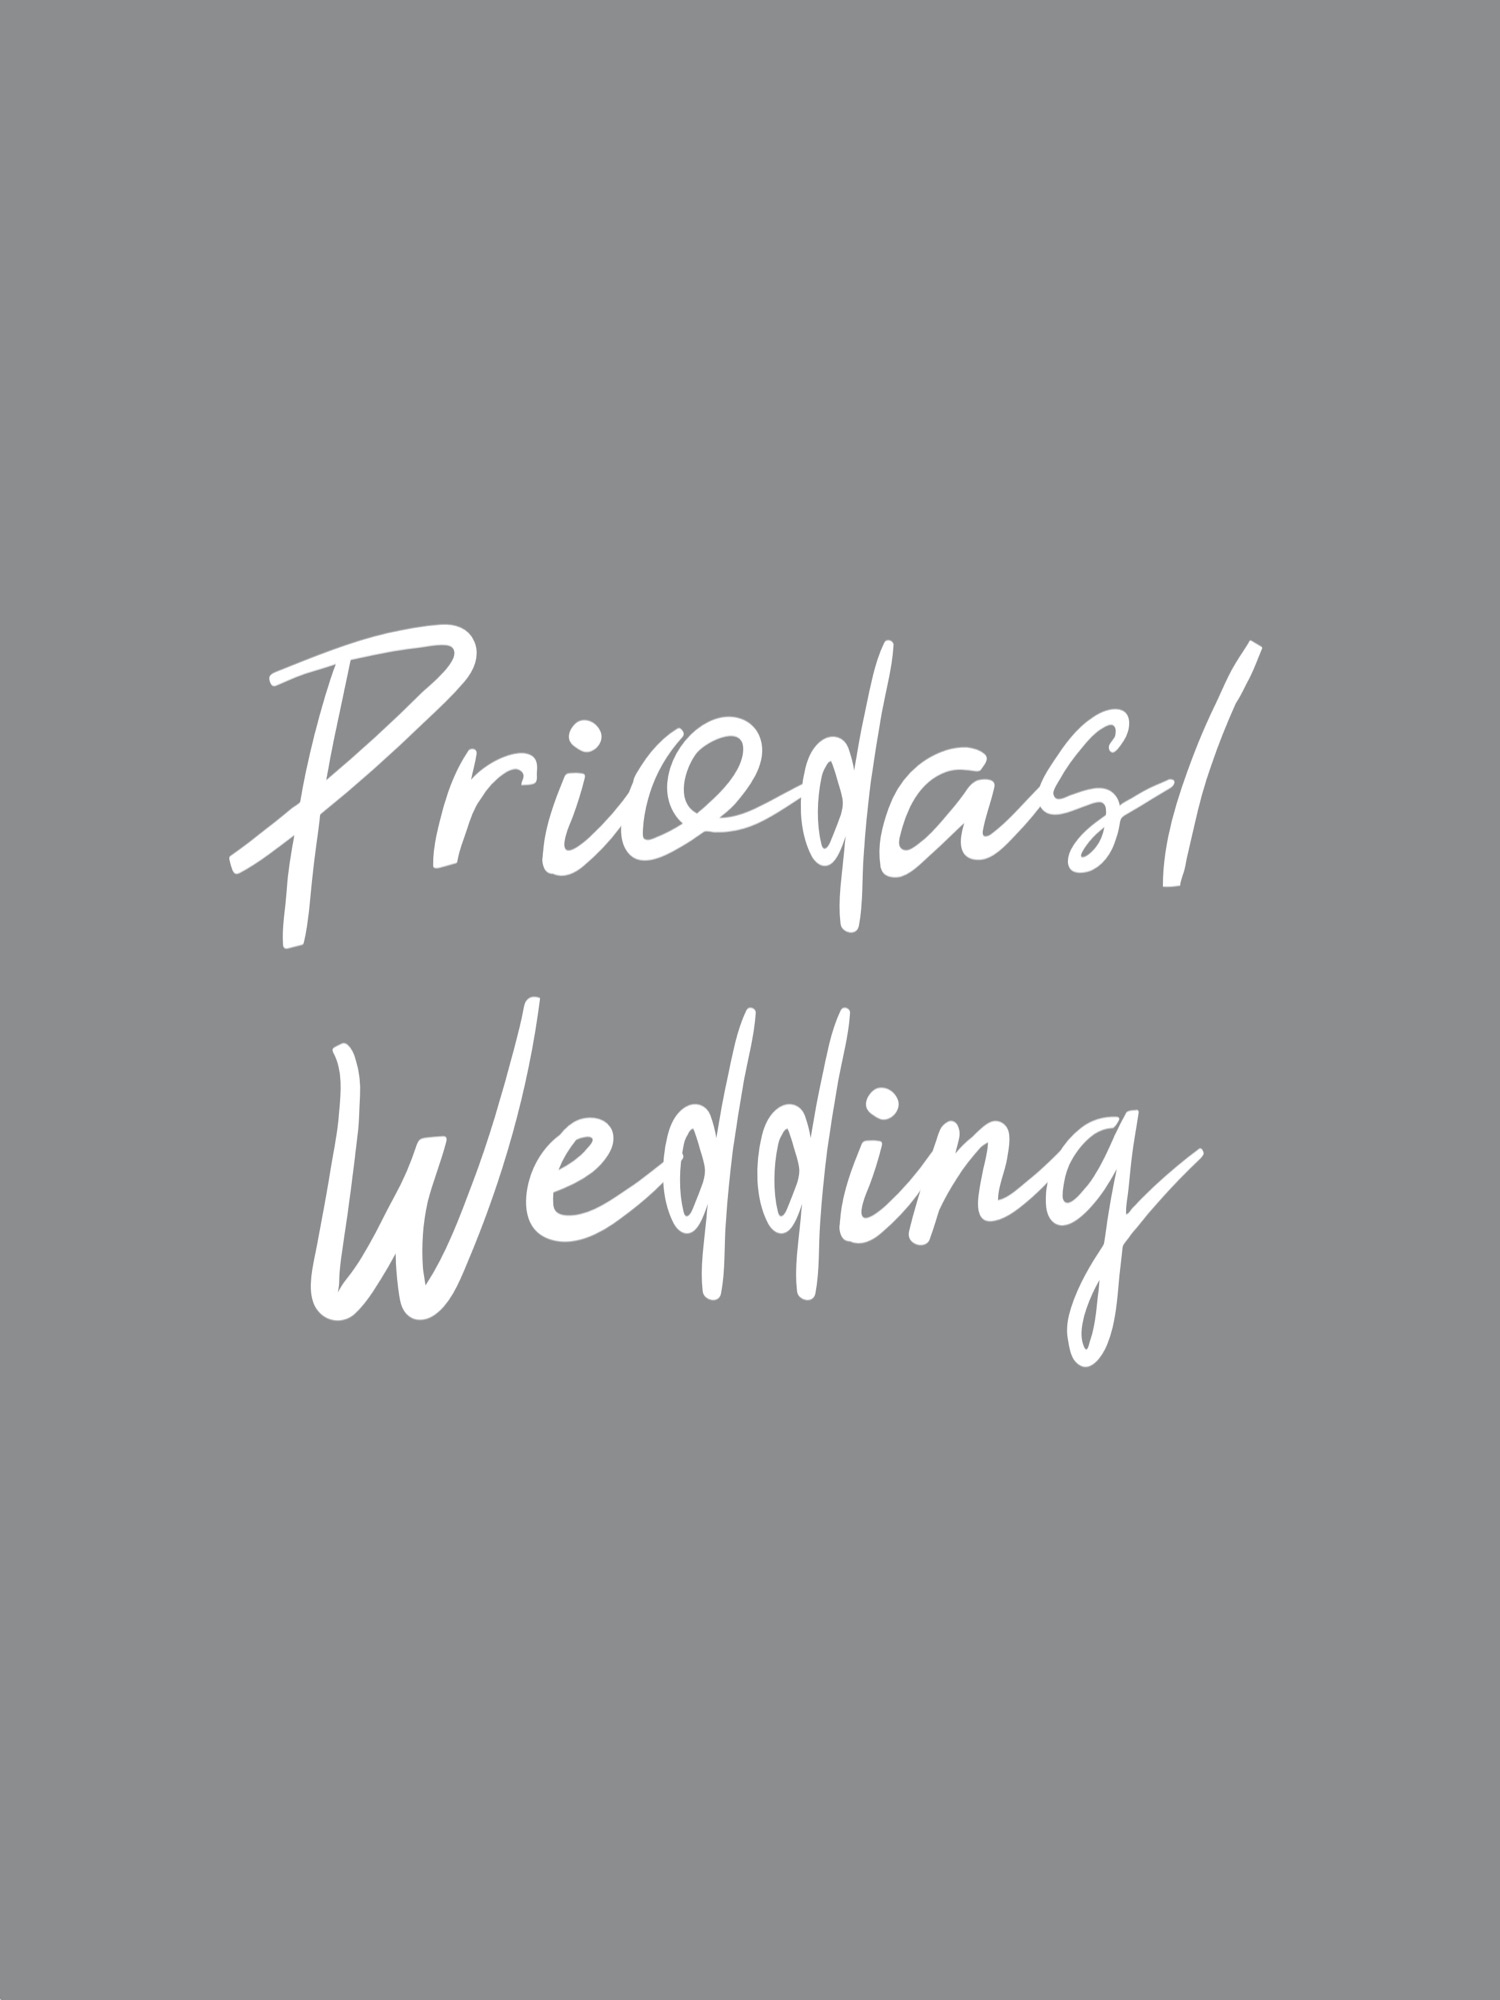 priodas and wedding